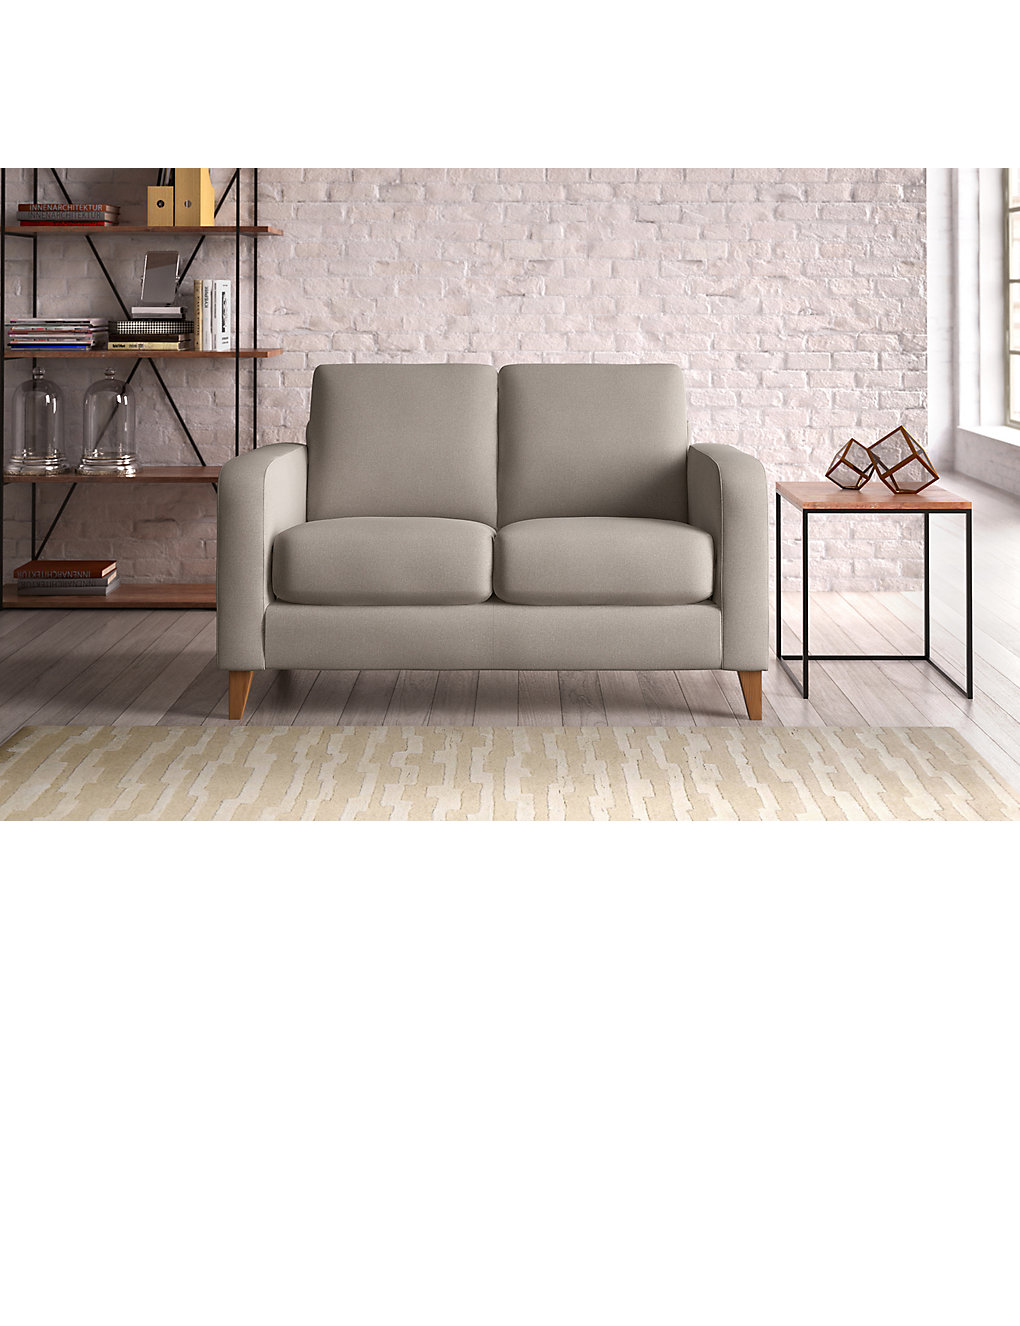 Tromso Compact Sofa. 3 Seater Sofas   Home   Furniture   M S